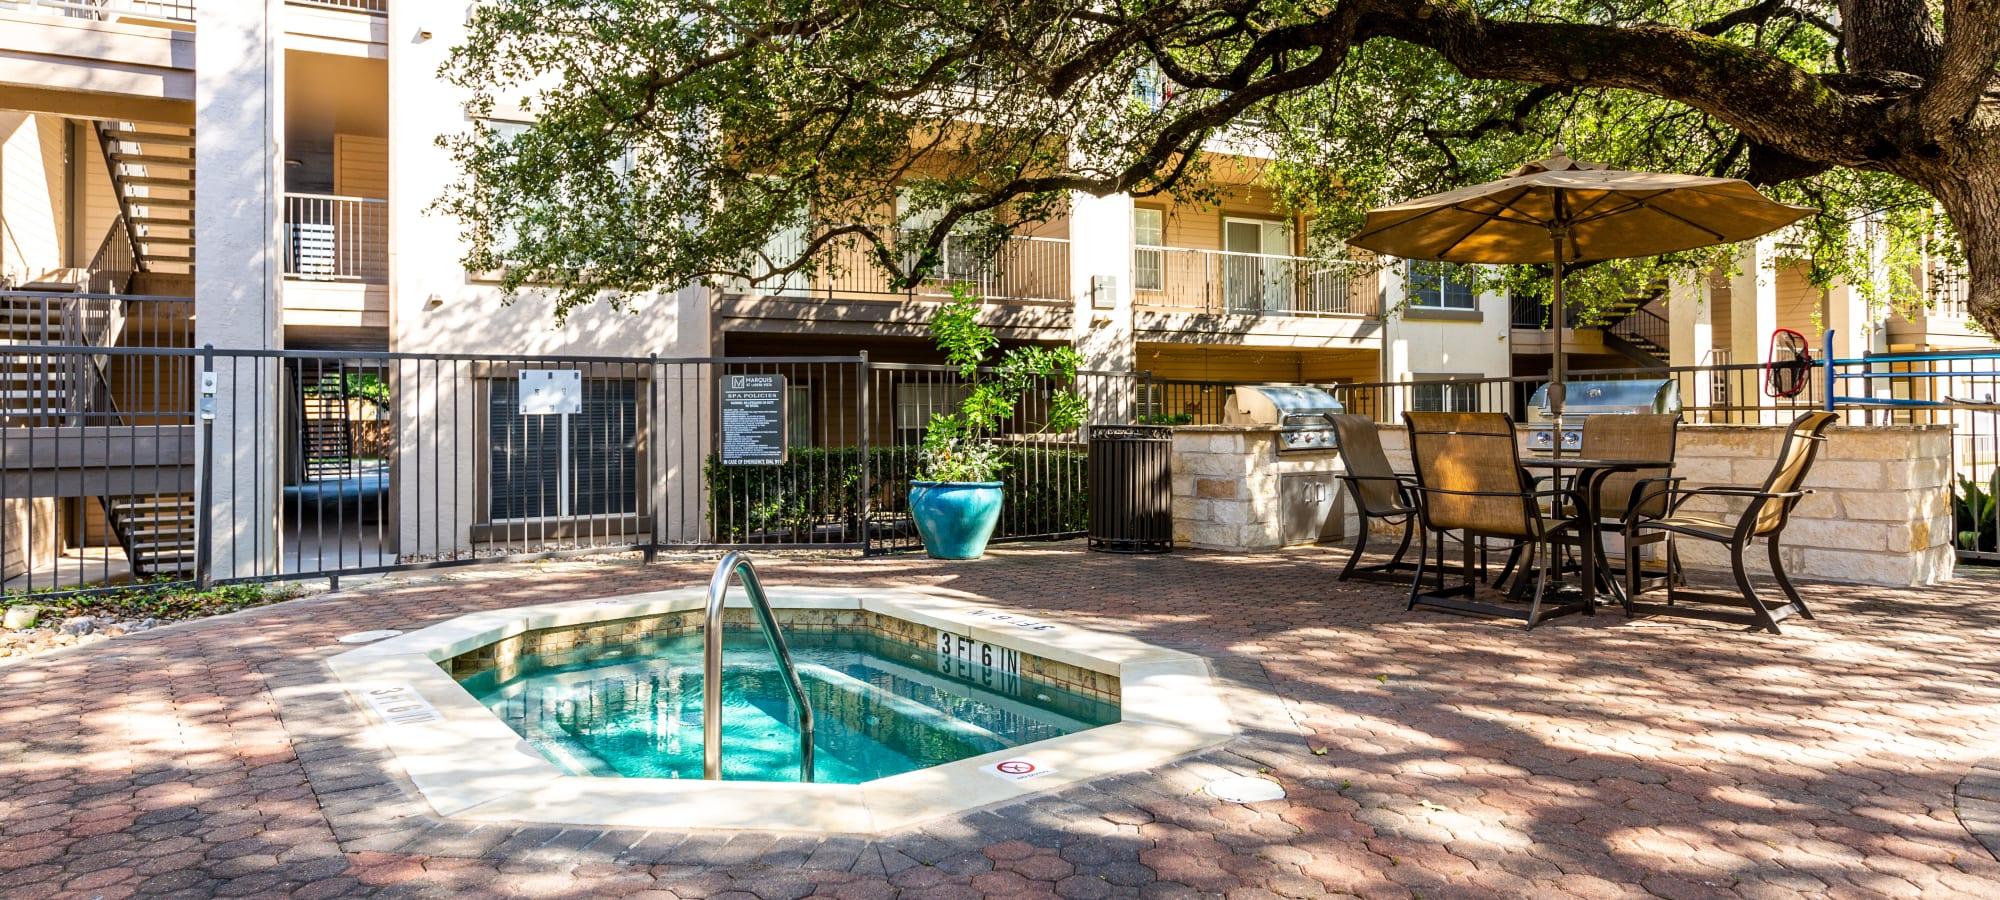 Gallery of photos for Marquis at Ladera Vista in Austin, Texas